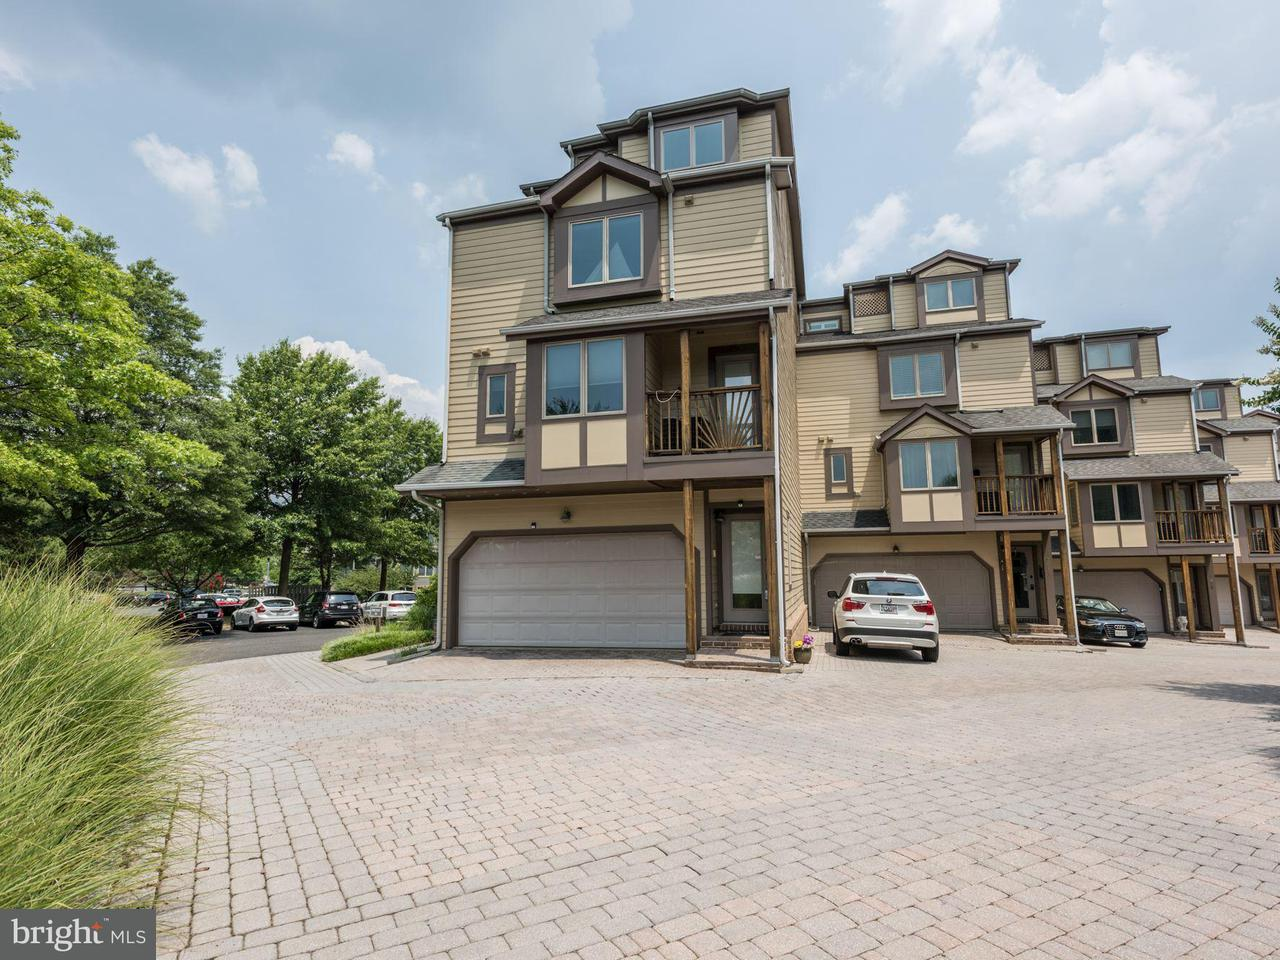 Additional photo for property listing at 7013 CLINTON CT #1B 7013 CLINTON CT #1B Annapolis, Maryland 21403 United States